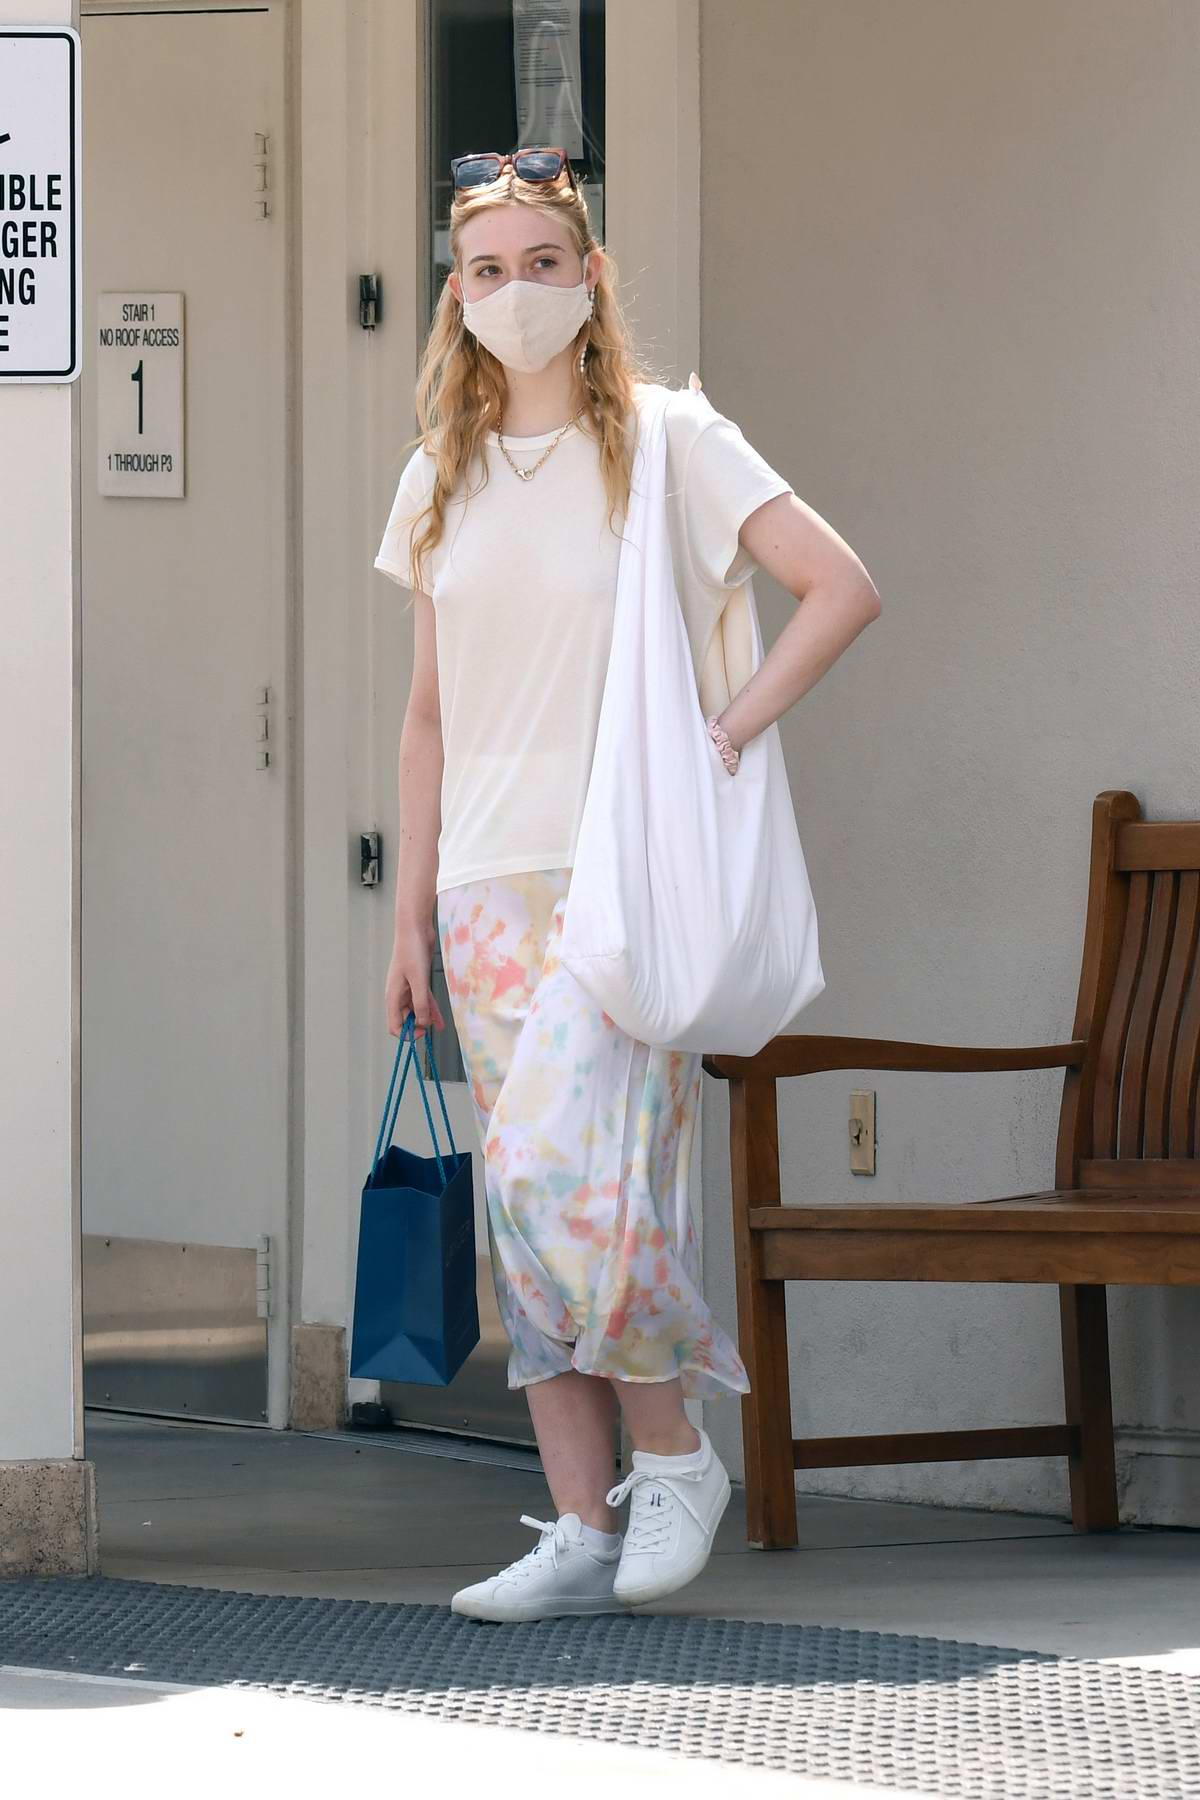 Elle Fanning wears an off-white top and tie-dye skirt while out for some shopping with her mom in Los Angeles